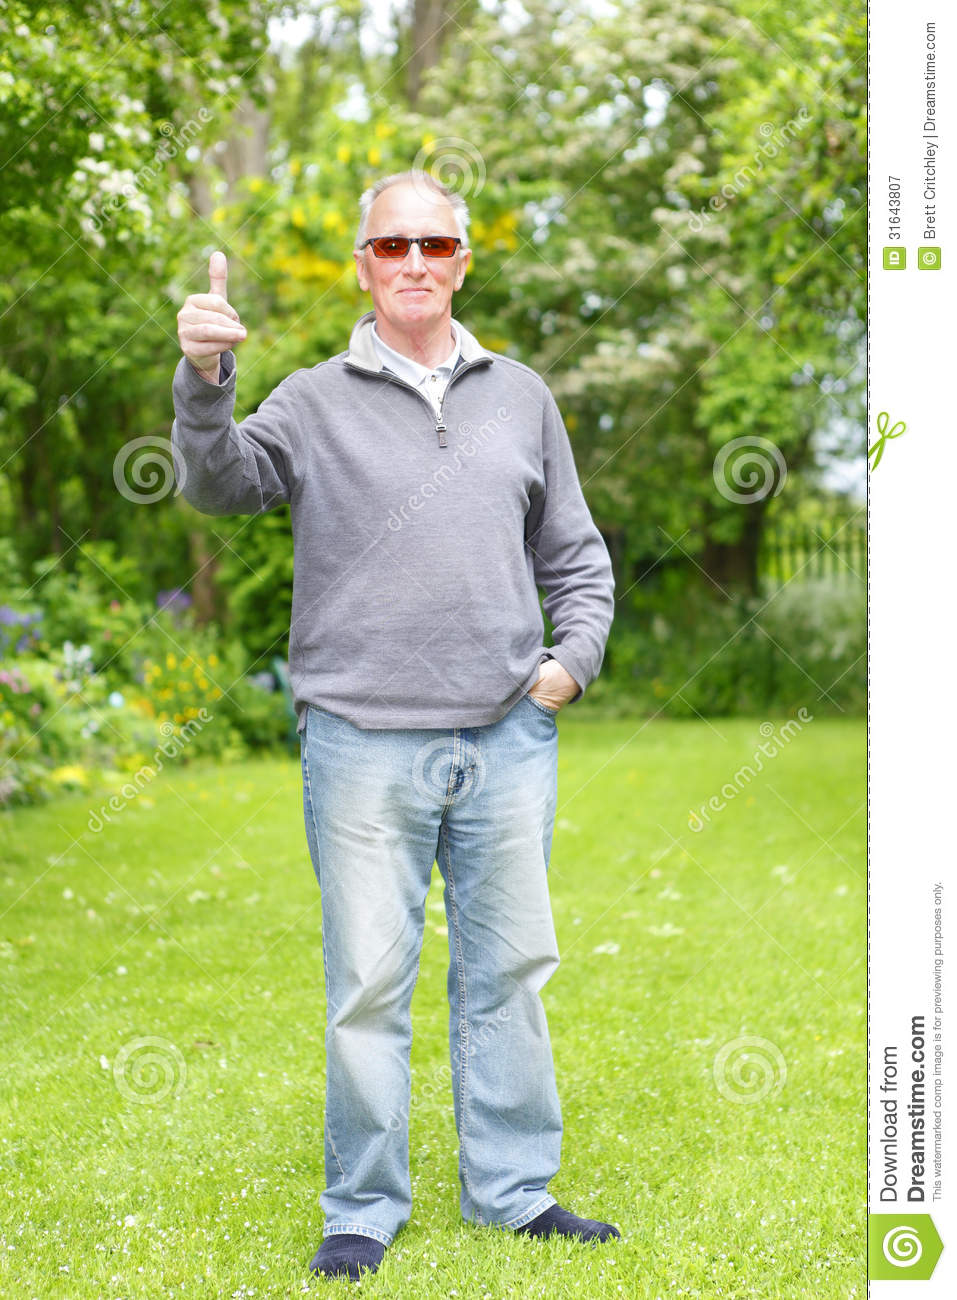 Old Man On His Grass Lawn Royalty Free Stock Photography